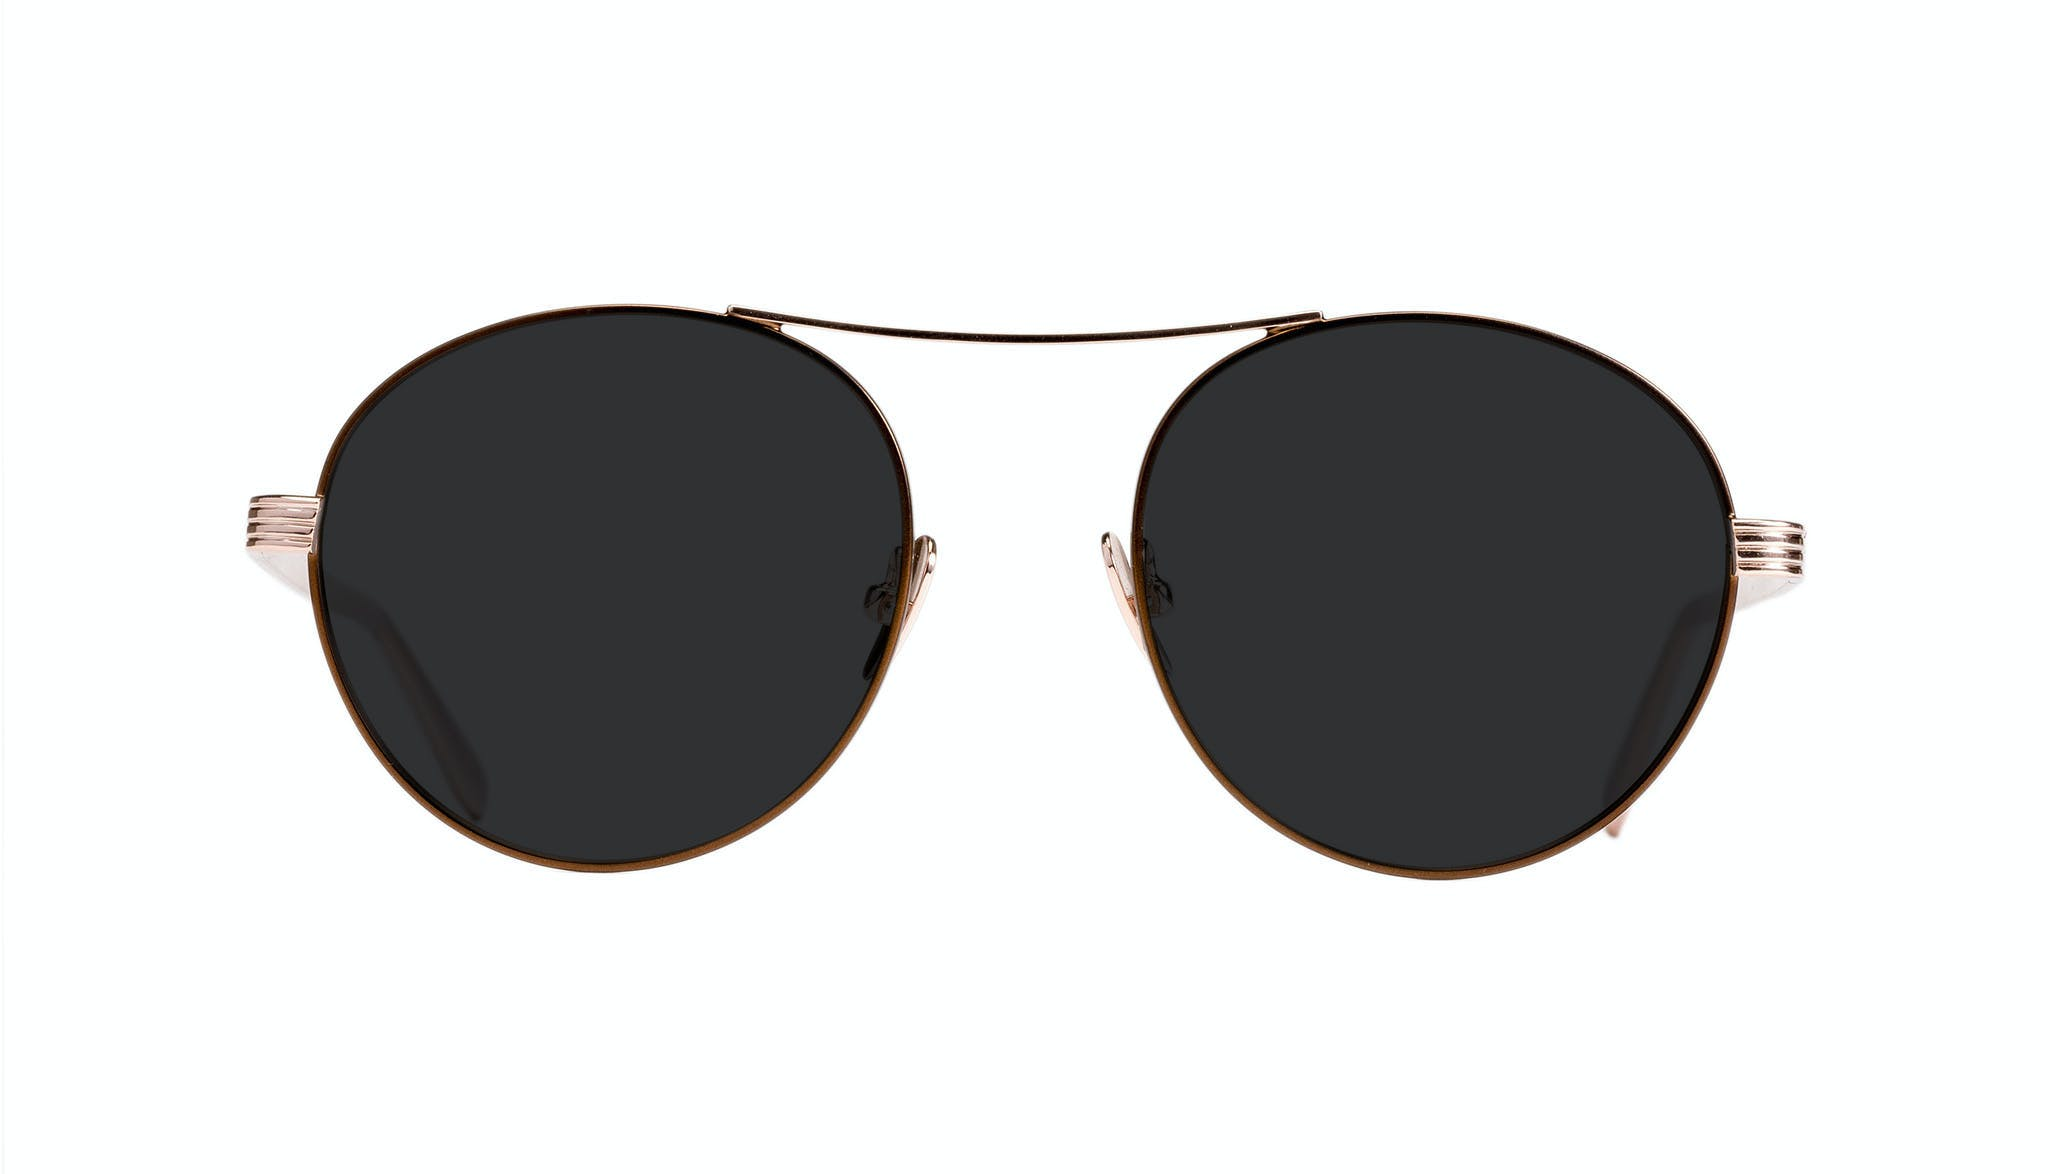 Affordable Fashion Glasses Round Sunglasses Women Prize Golden Lilac Front